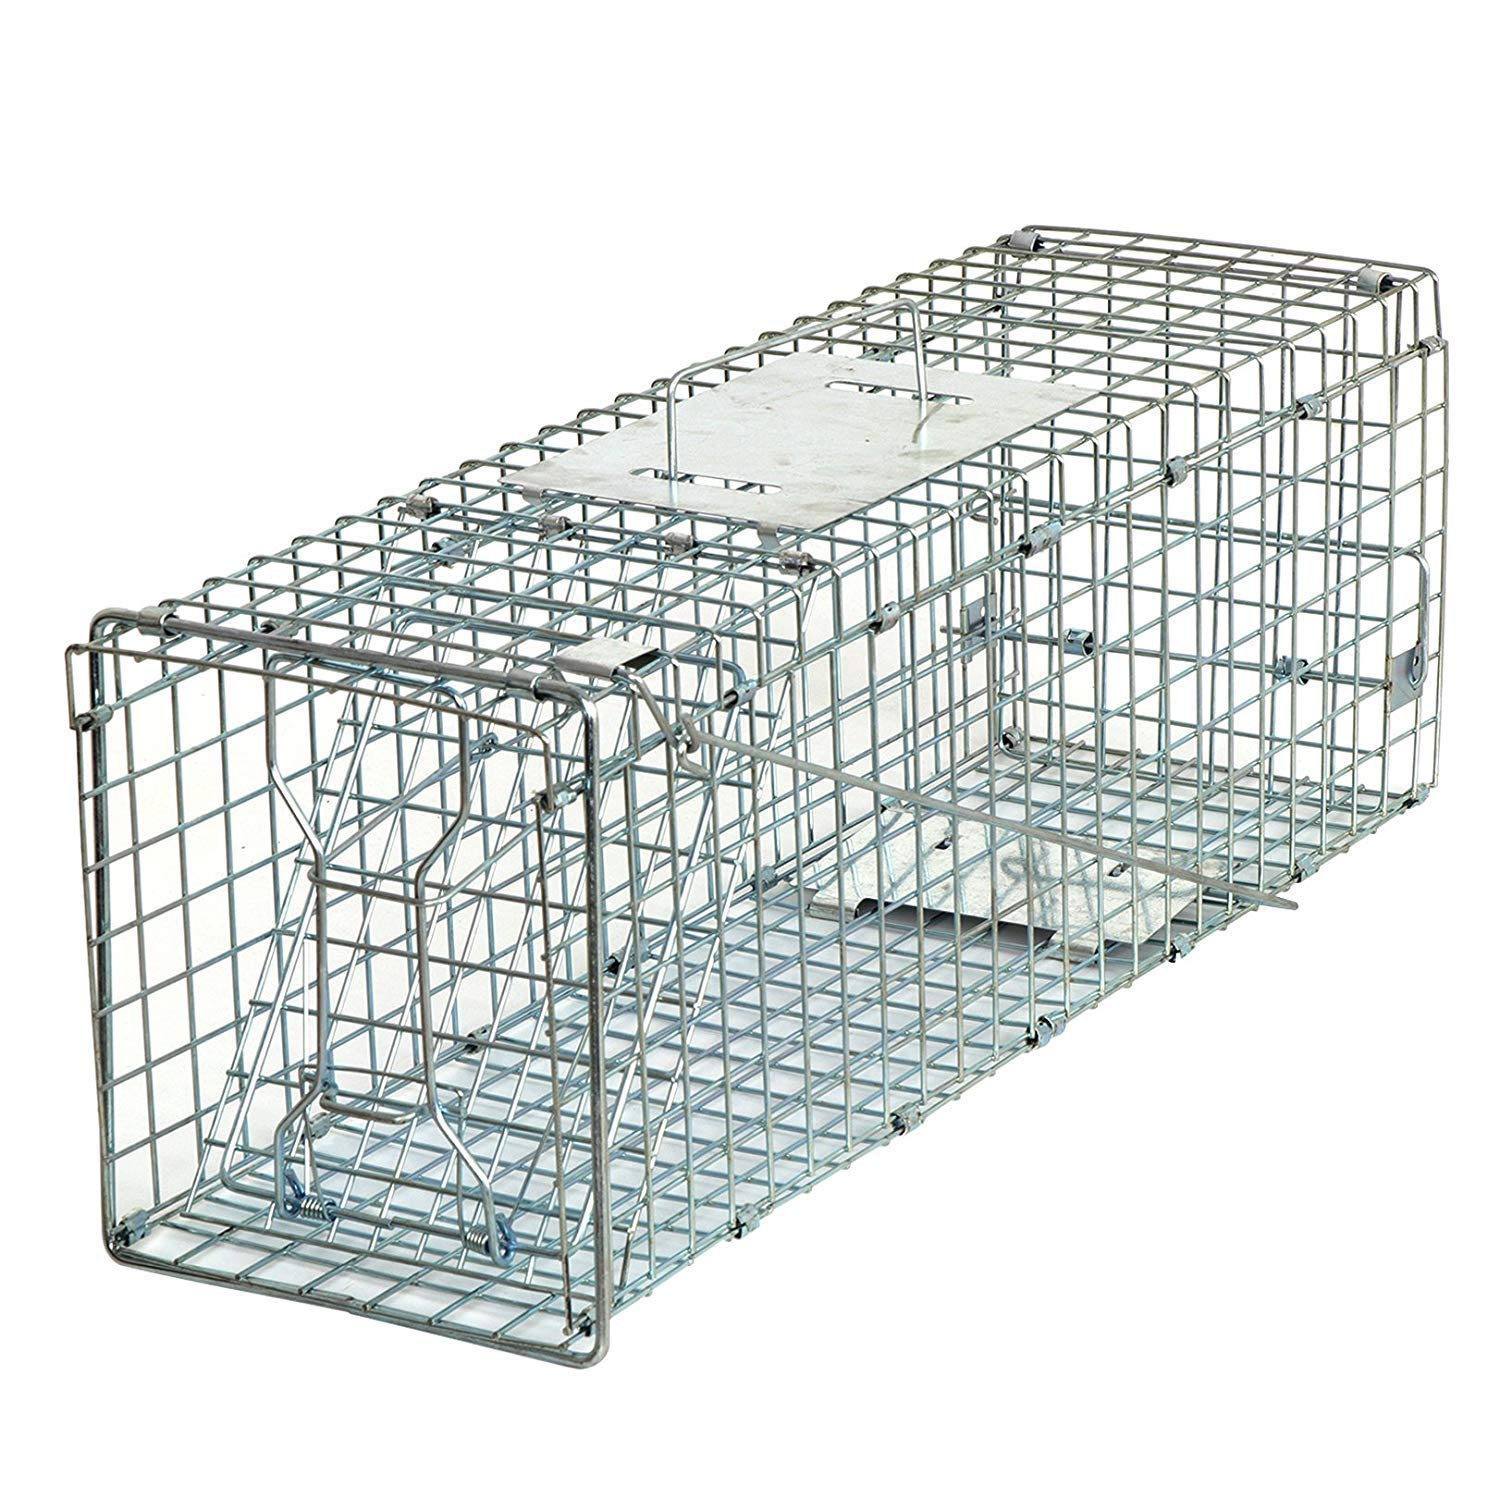 Mole Squirrel Groundhog 24 Silver Stray Cat Raccoon Chicken HomGarden Live Animal Trap 24inch Catch Release Humane Rodent Cage for Rabbits Opossum Skunk /& Chipmunks Gopher